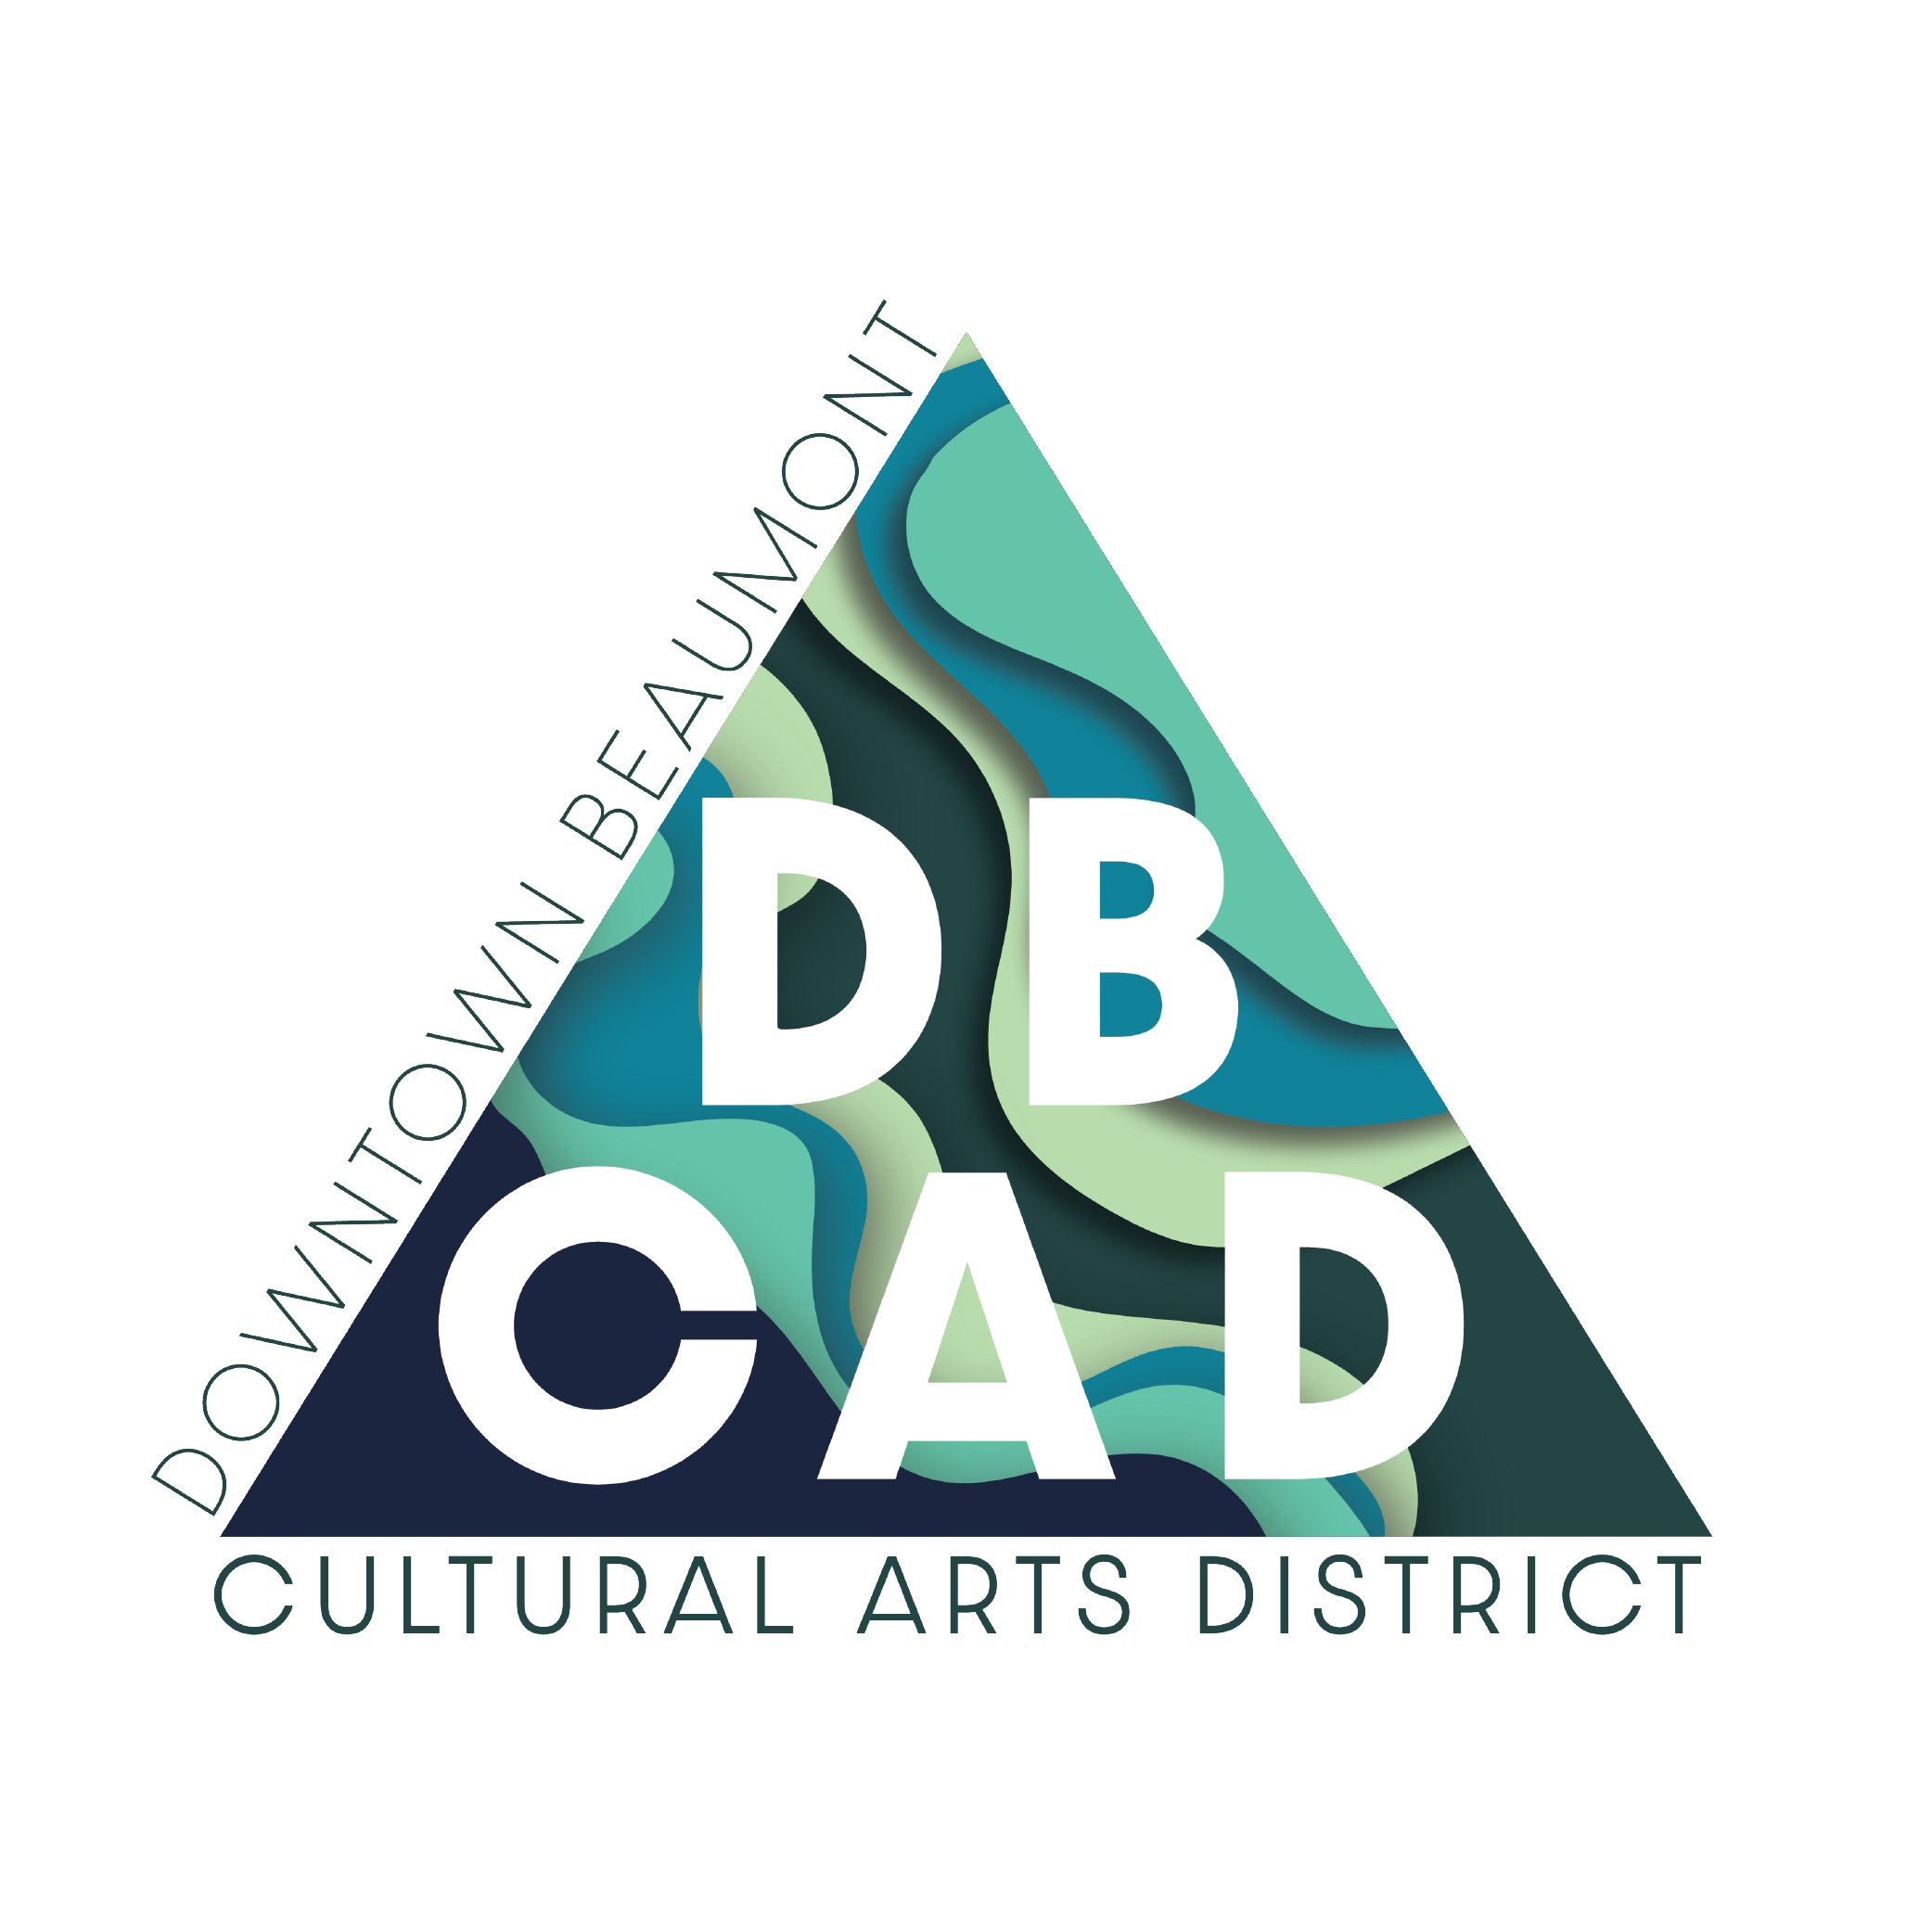 DOWNTOWN BEAUMONT Cultural Arts District Logo